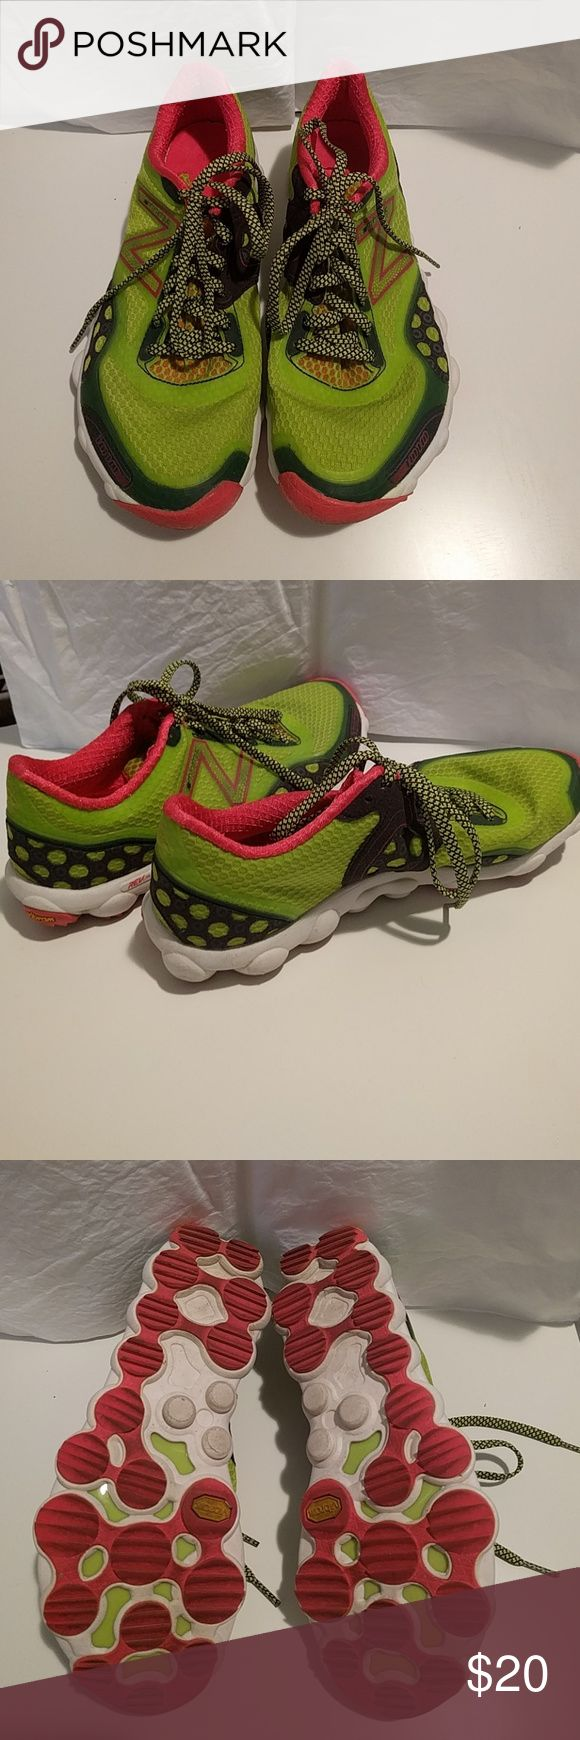 New Balance Minimus trail shoes Bright green trail running shoes. New Balance Shoes Athletic Shoes